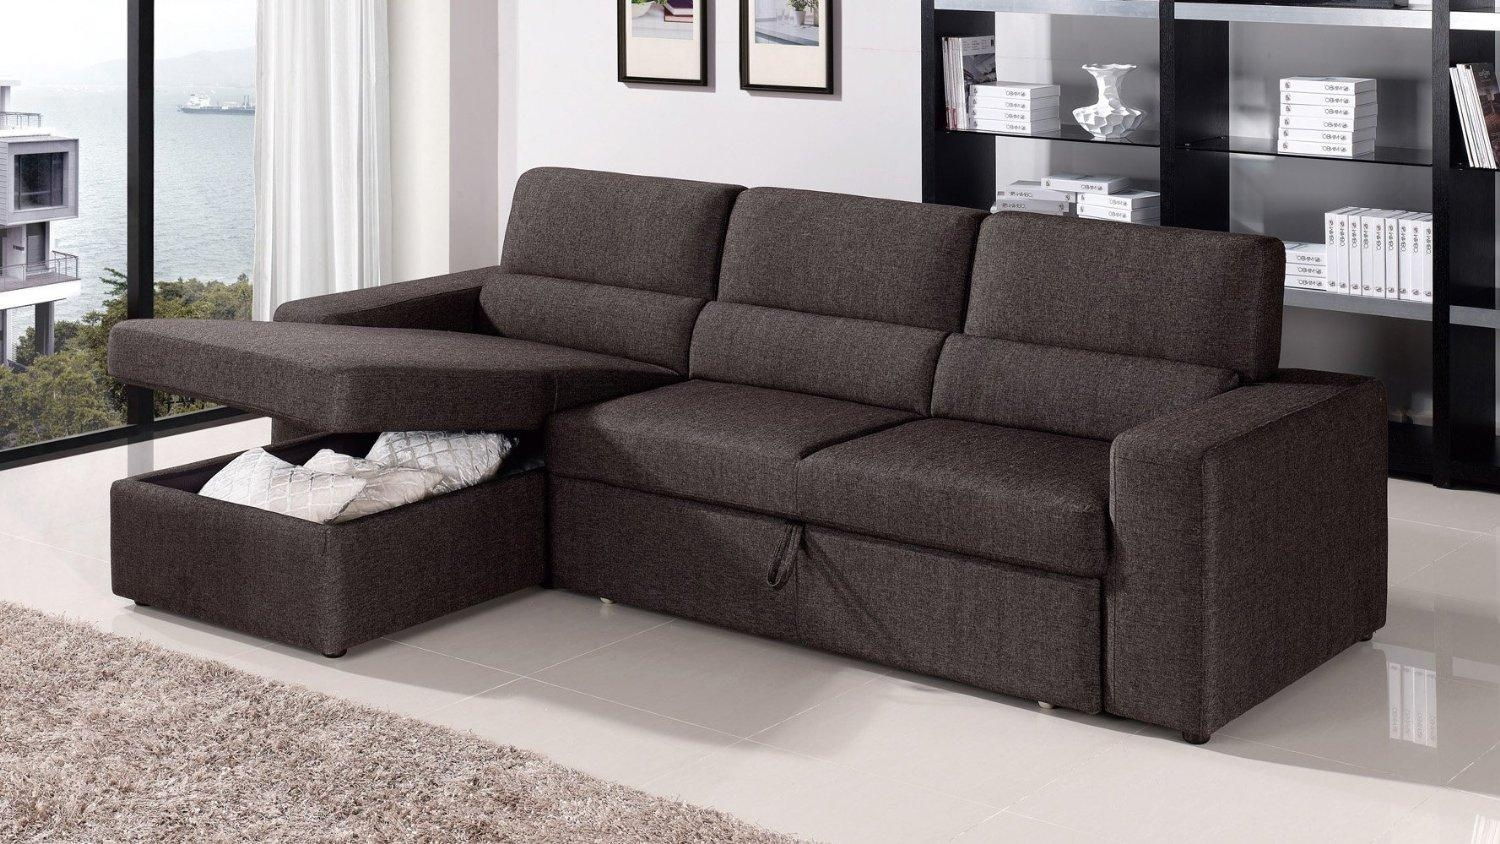 Sofa Sleeper With Chaise Lounge – Ansugallery Throughout Sofa Beds With Chaise Lounge (View 10 of 20)